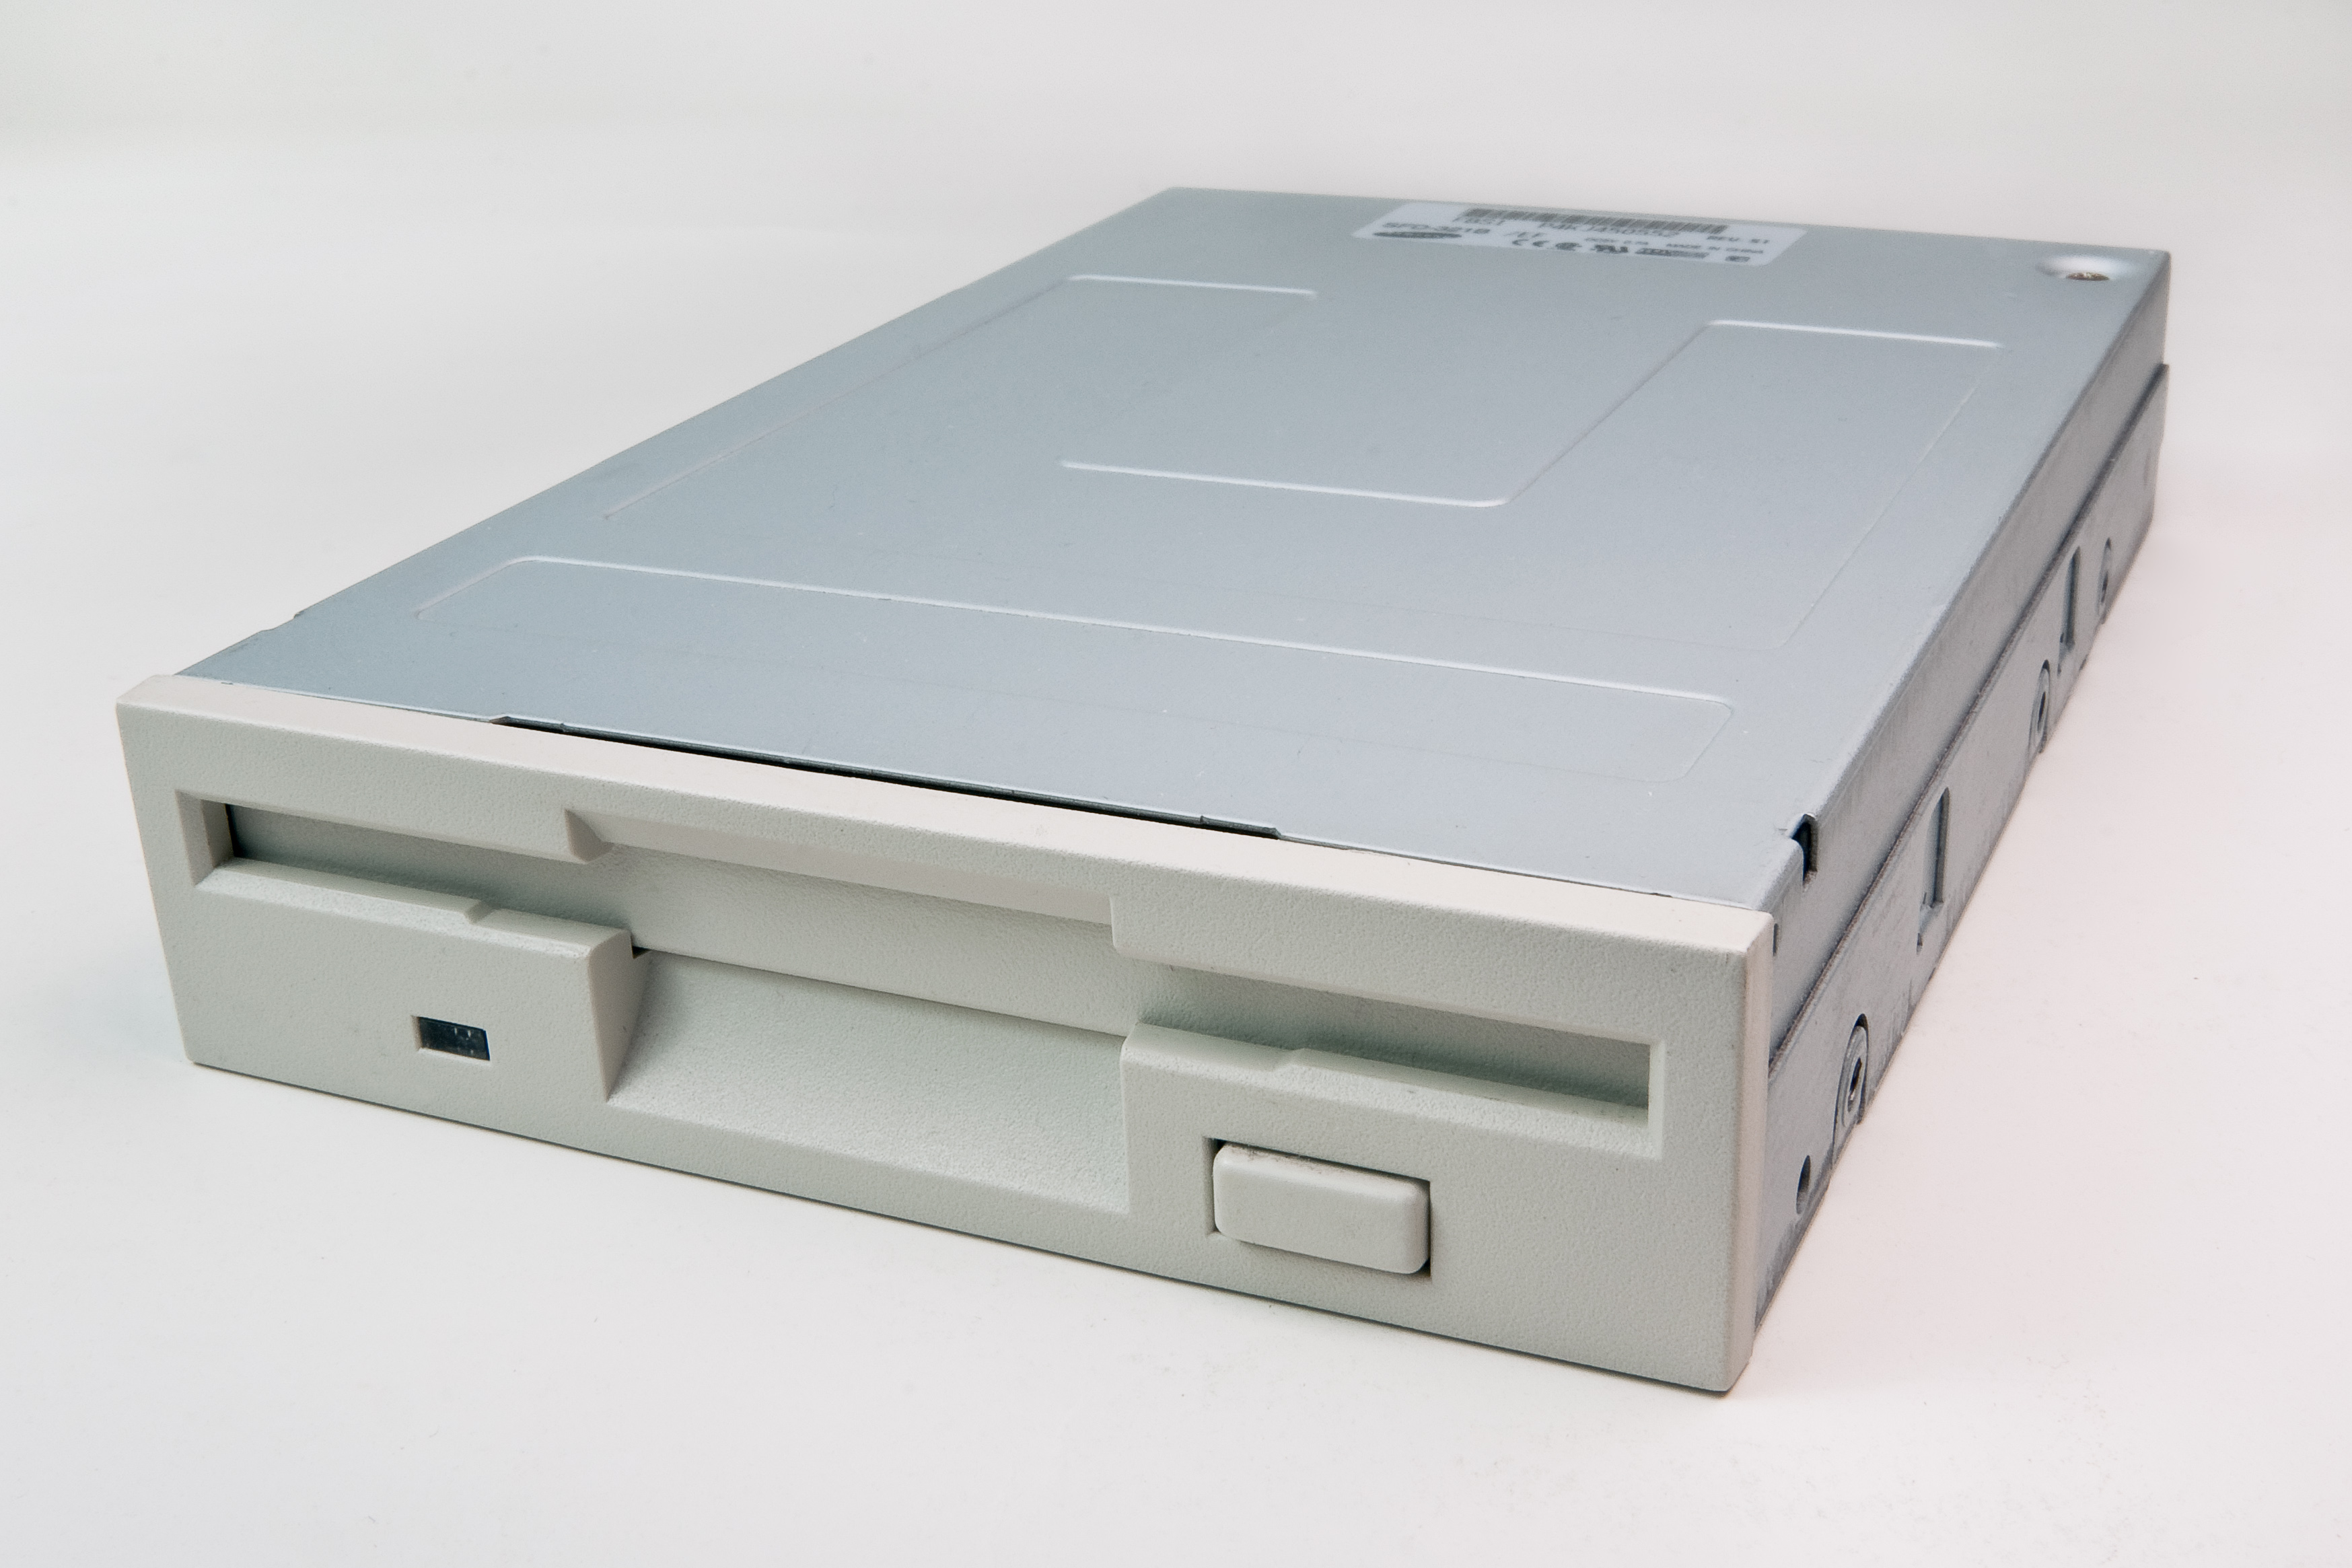 A typical 3.5in Floppy disk internal drive.